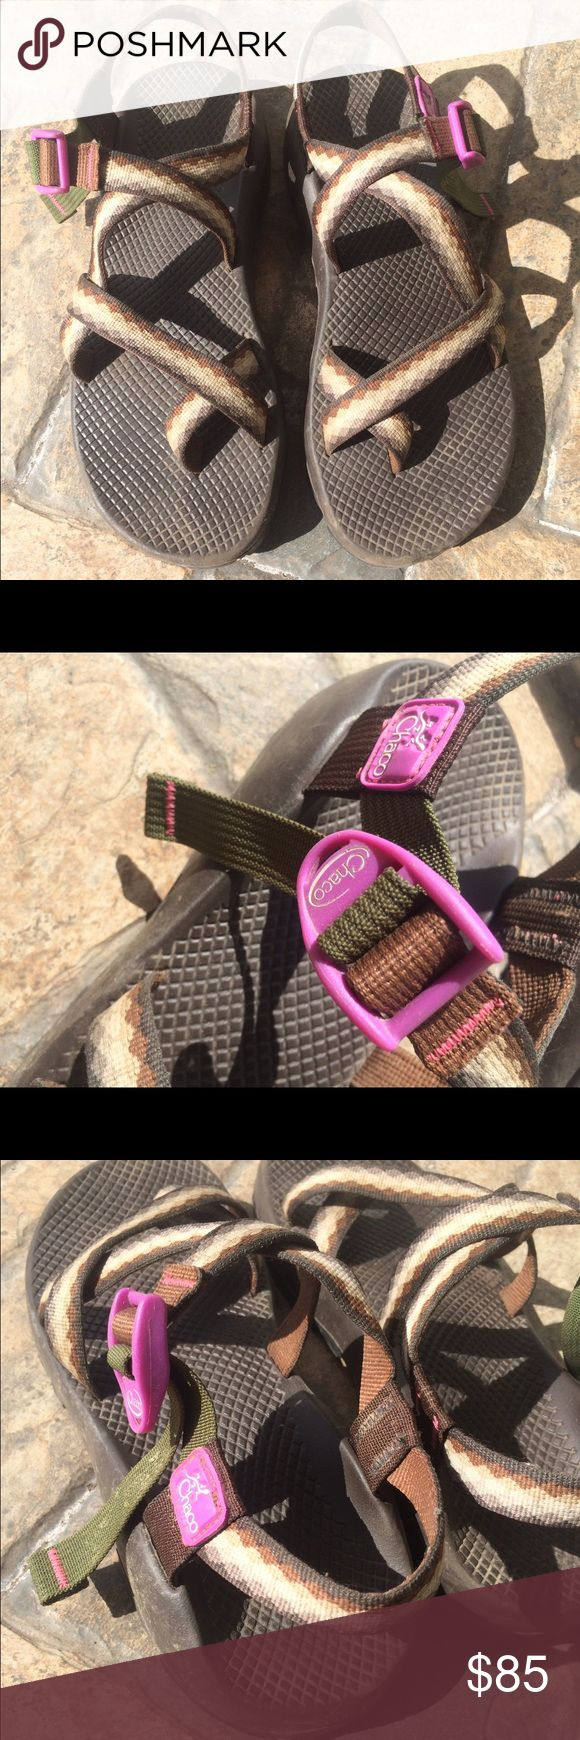 Women's Chaco Sandals Size 10 Custom Chacos with chocolate footbed and black heavy duty hiking sole. Purple buckle and hunter green strap. I have only worn them hiking a few times. They are too big. Chacos Shoes Sandals